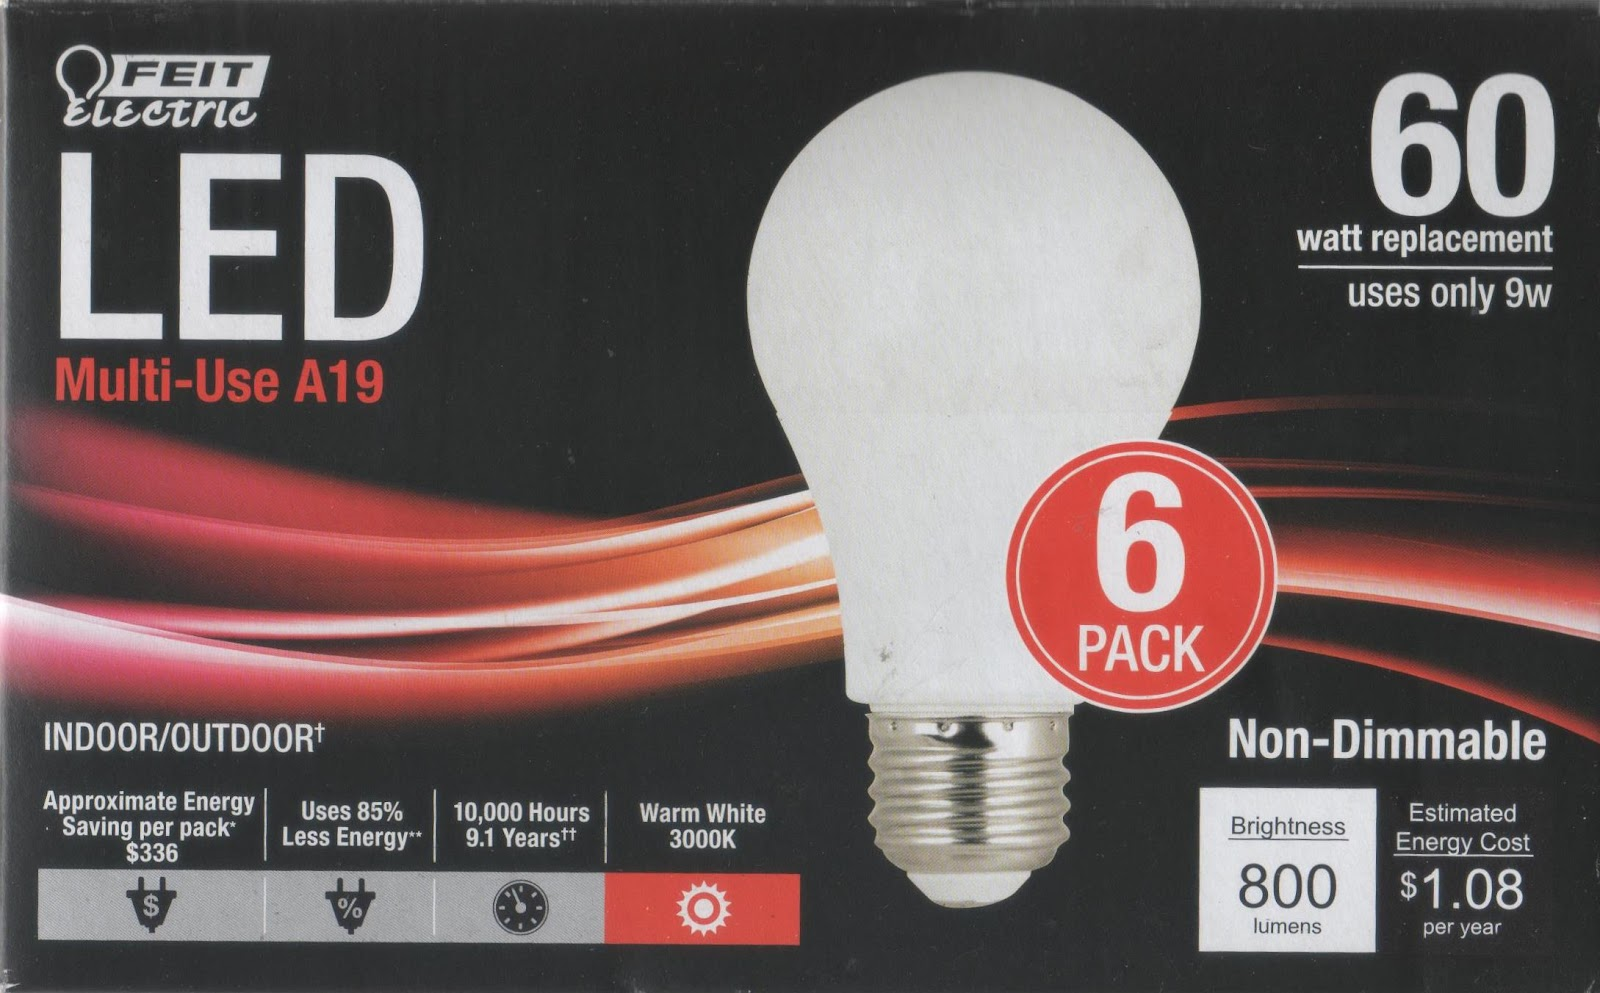 Energy Conservation How To Review Feit Electric 60 Watt